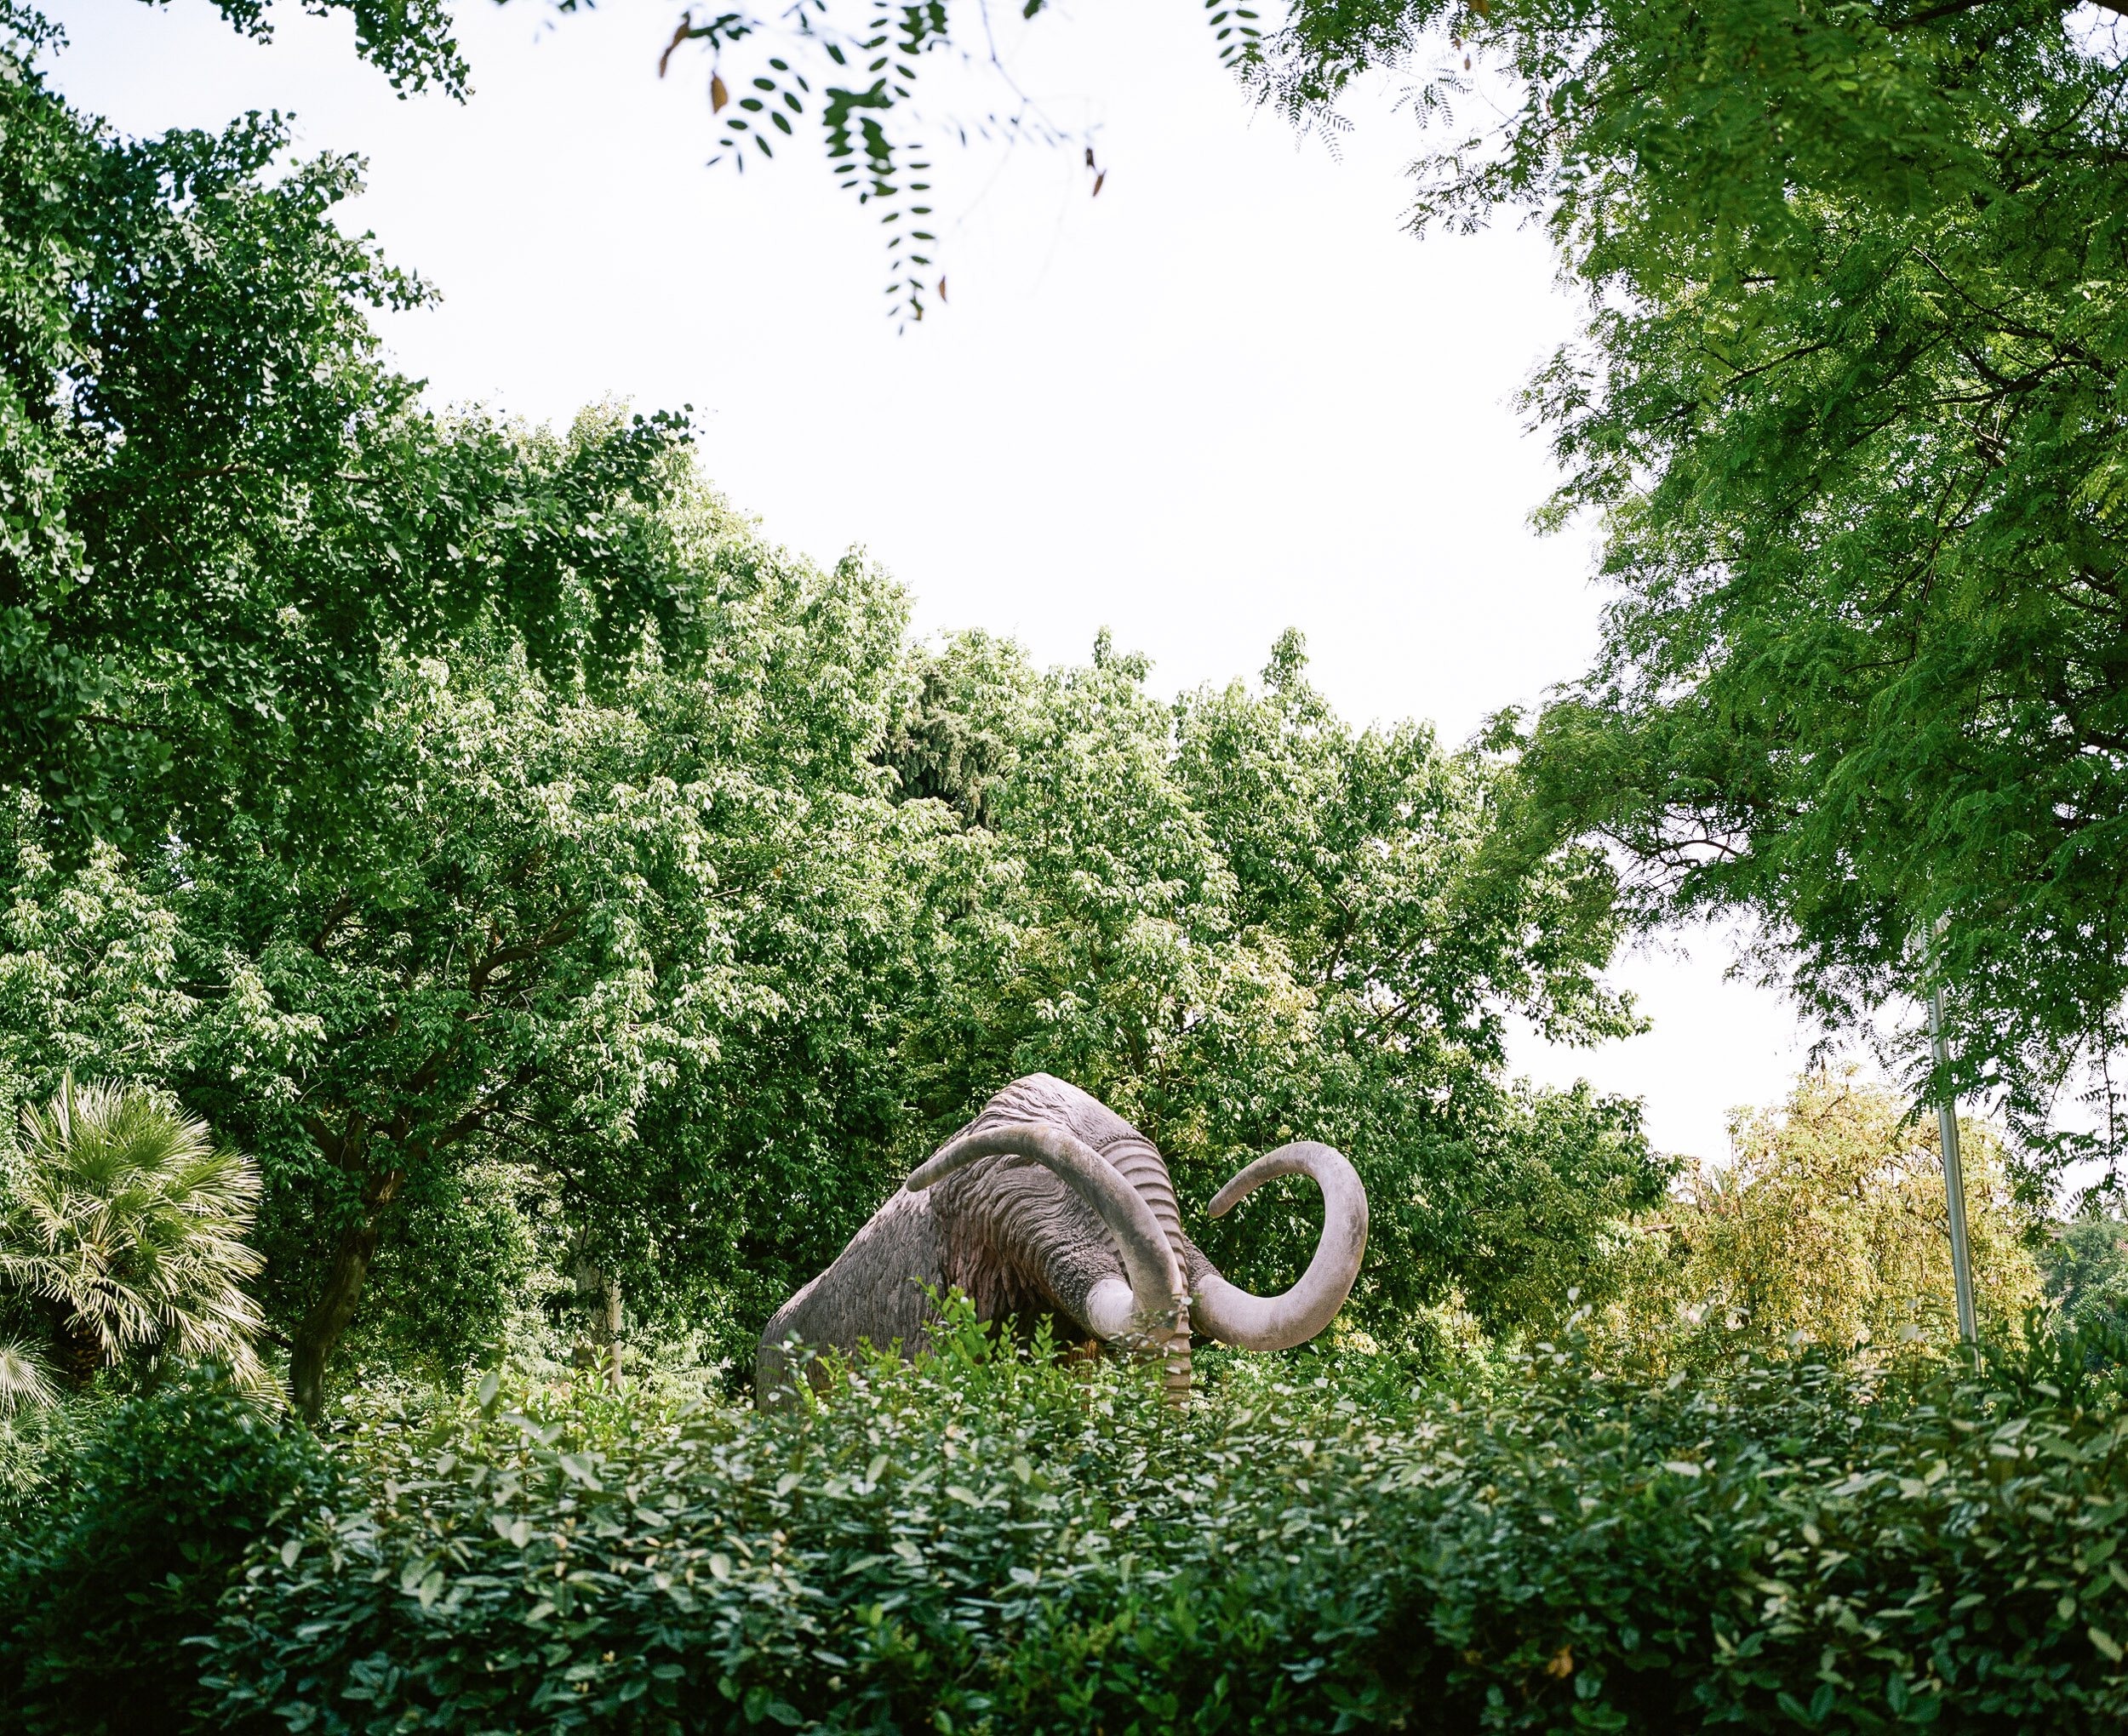 Stone Mammoth in a park in  Barcelona Spain